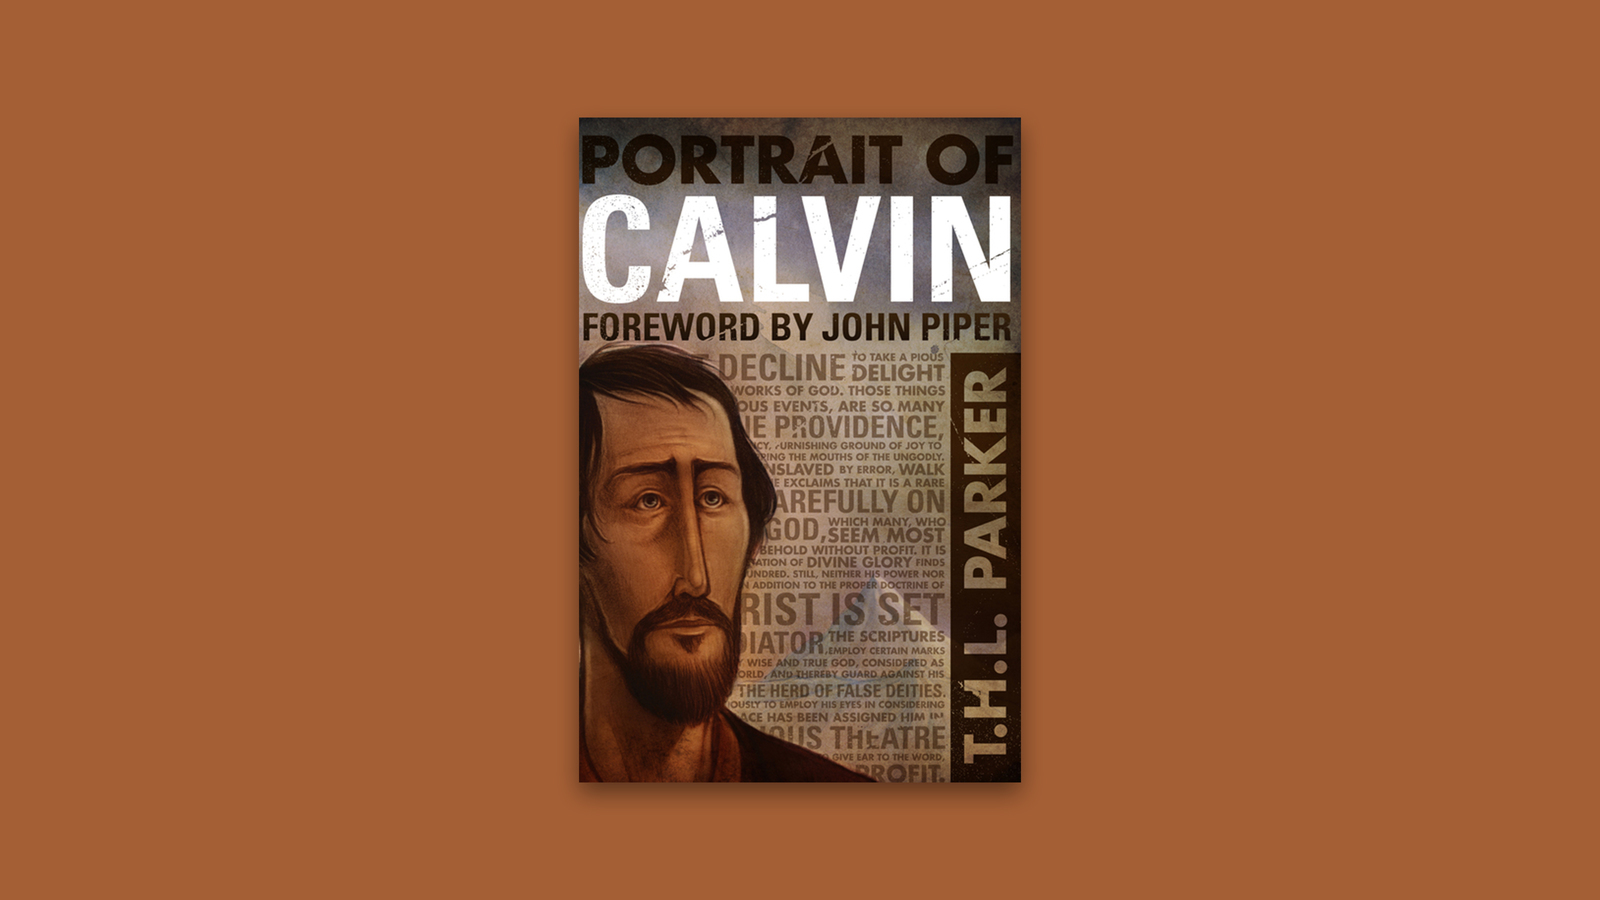 christian singles in calvin Free online dating and matchmaking service for singles 3,000,000 daily active online dating users.